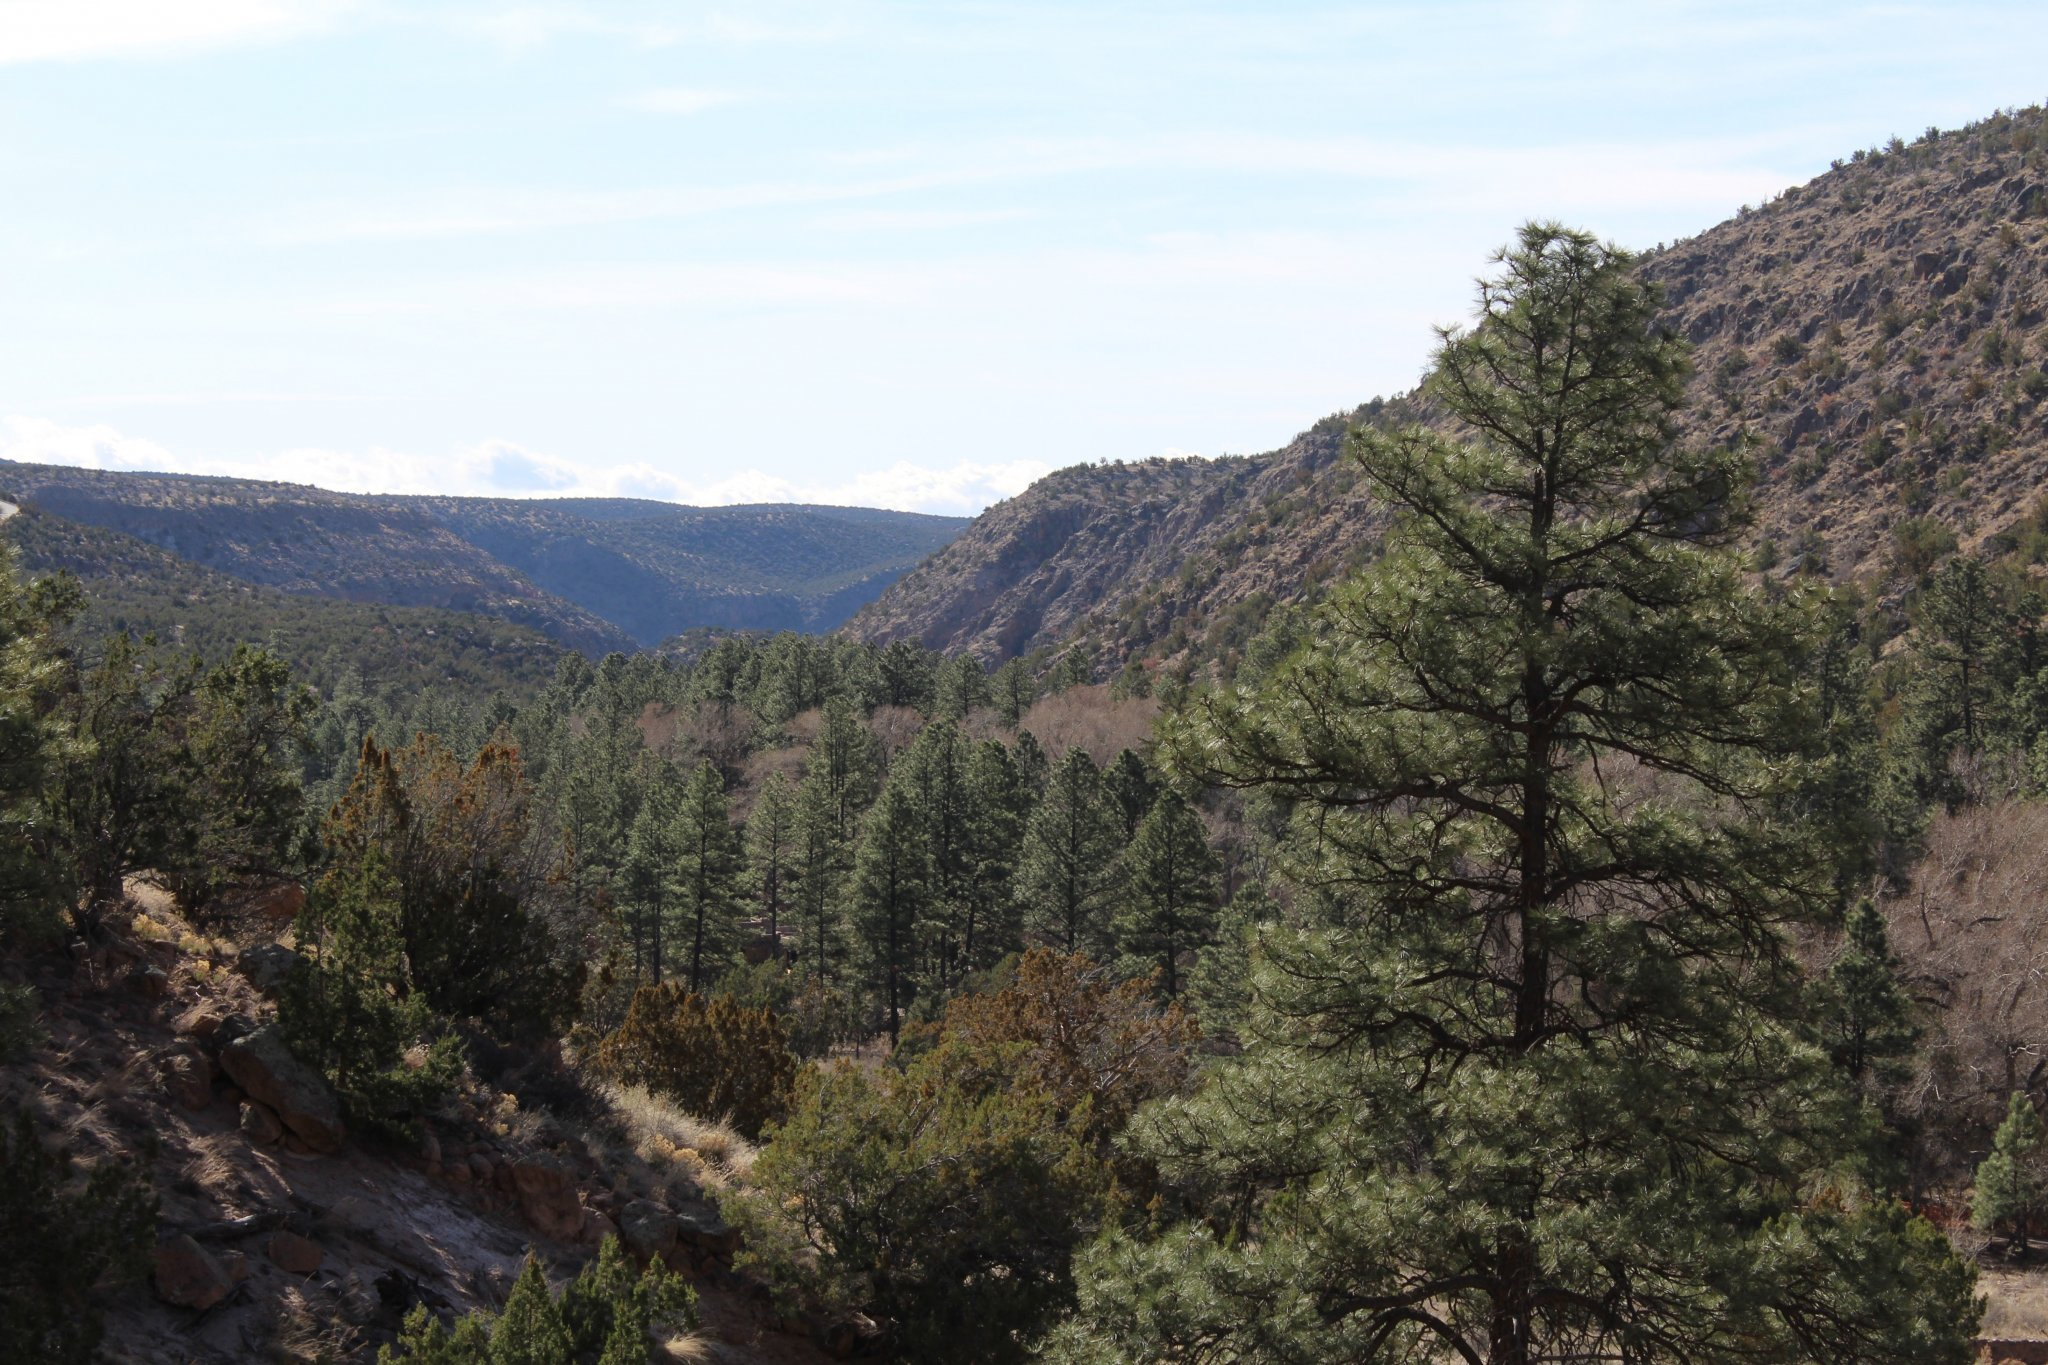 Day Trip from Santa Fe : Fairytale like woods that stretch for a while (cliff dwellings on other side)